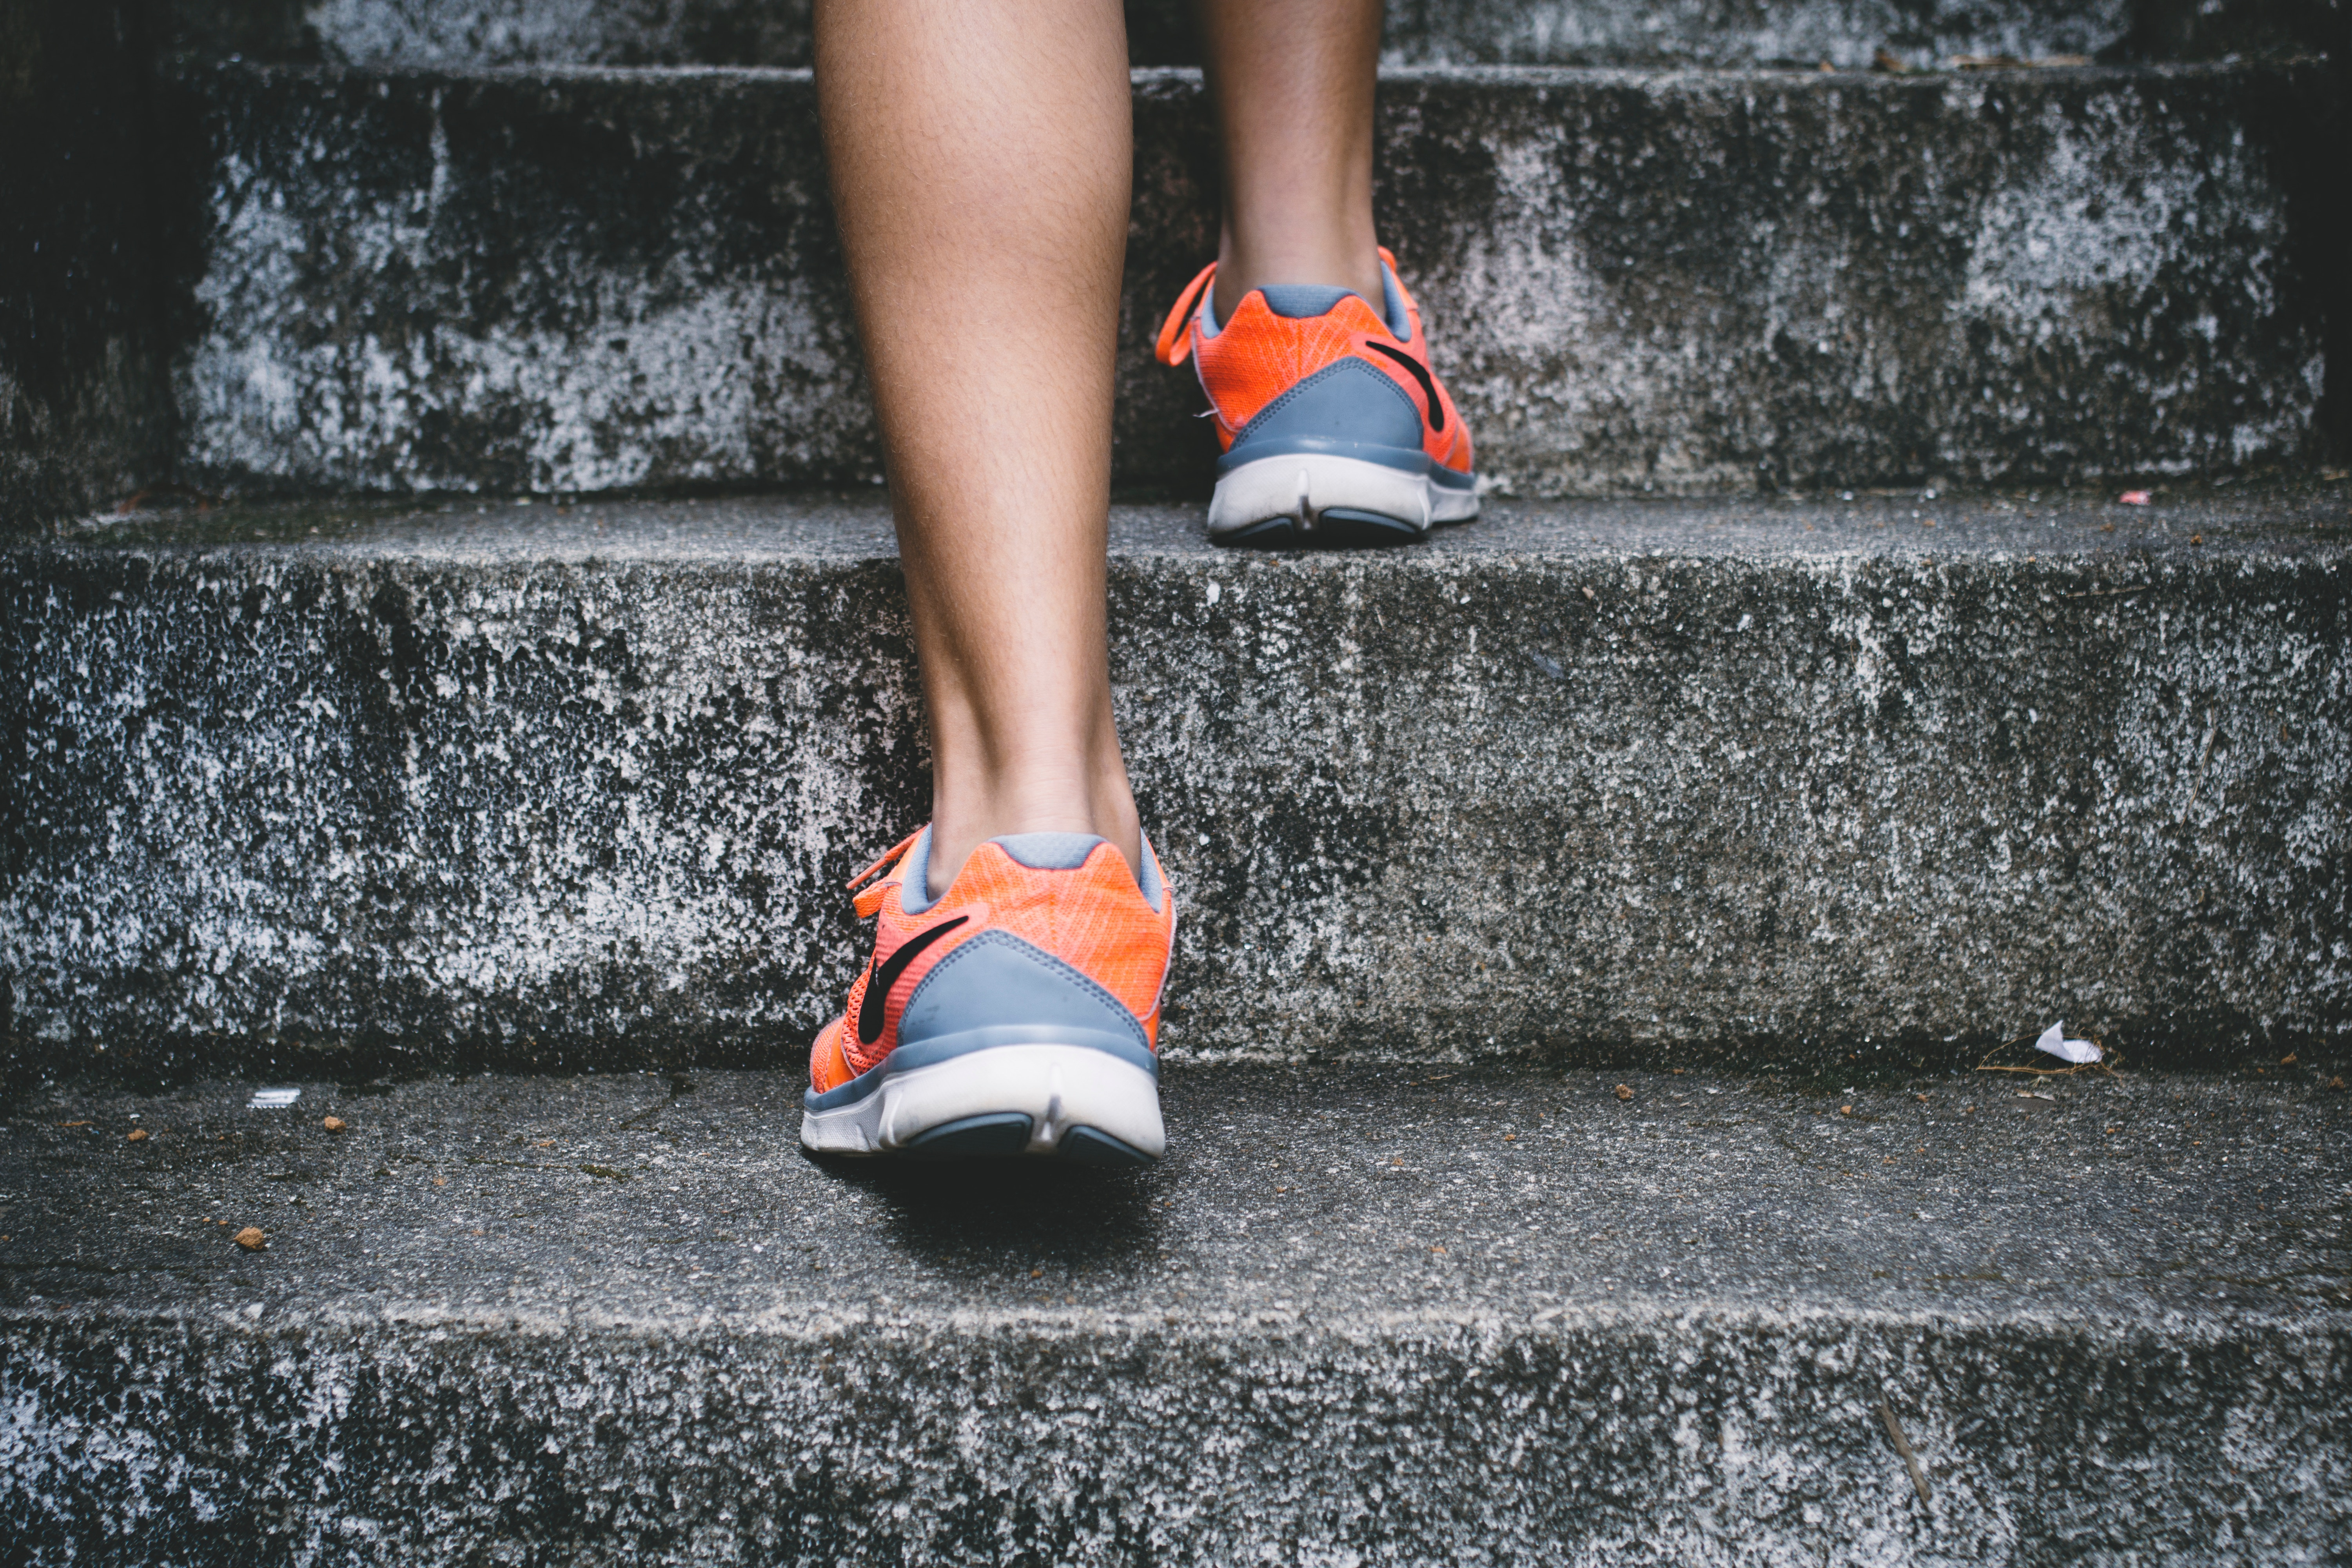 Ten great benefits to exercise more. Exercise Right Week, 21 – 27 May